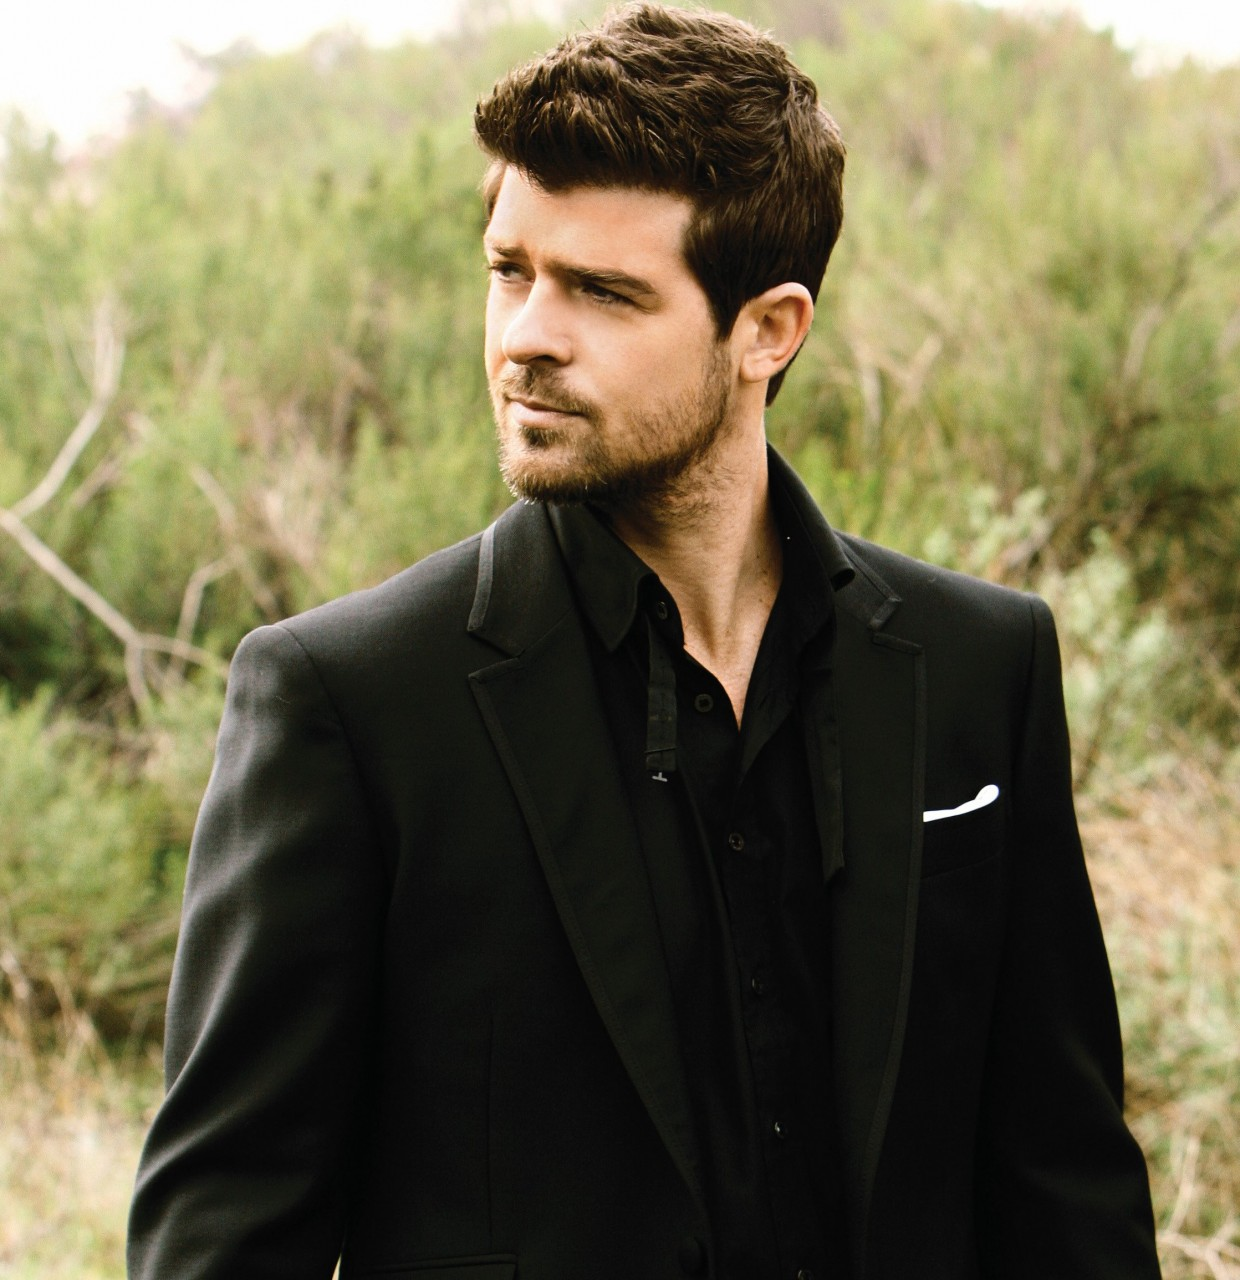 Robin Thicke Wallpapers High Quality Download Free